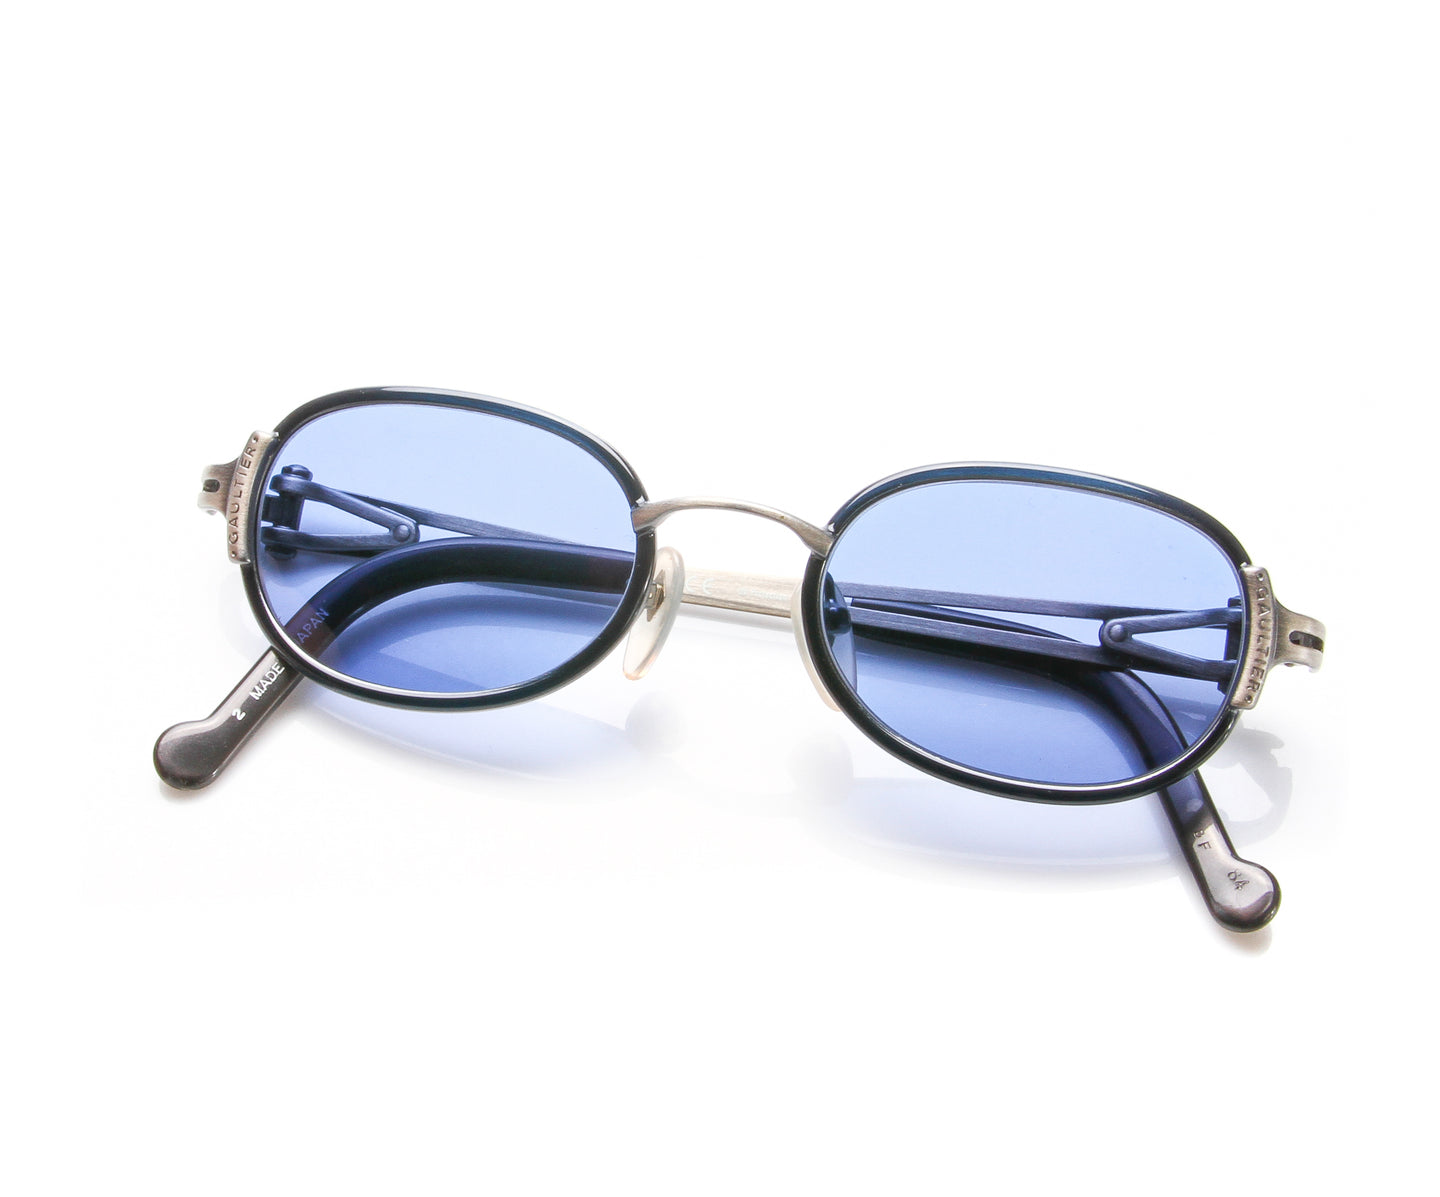 Jean Paul Gaultier 56 0004 2, Jean Paul Gaultier , glasses frames, eyeglasses online, eyeglass frames, mens glasses, womens glasses, buy glasses online, designer eyeglasses, vintage sunglasses, retro sunglasses, vintage glasses, sunglass, eyeglass, glasses, lens, vintage frames company, vf